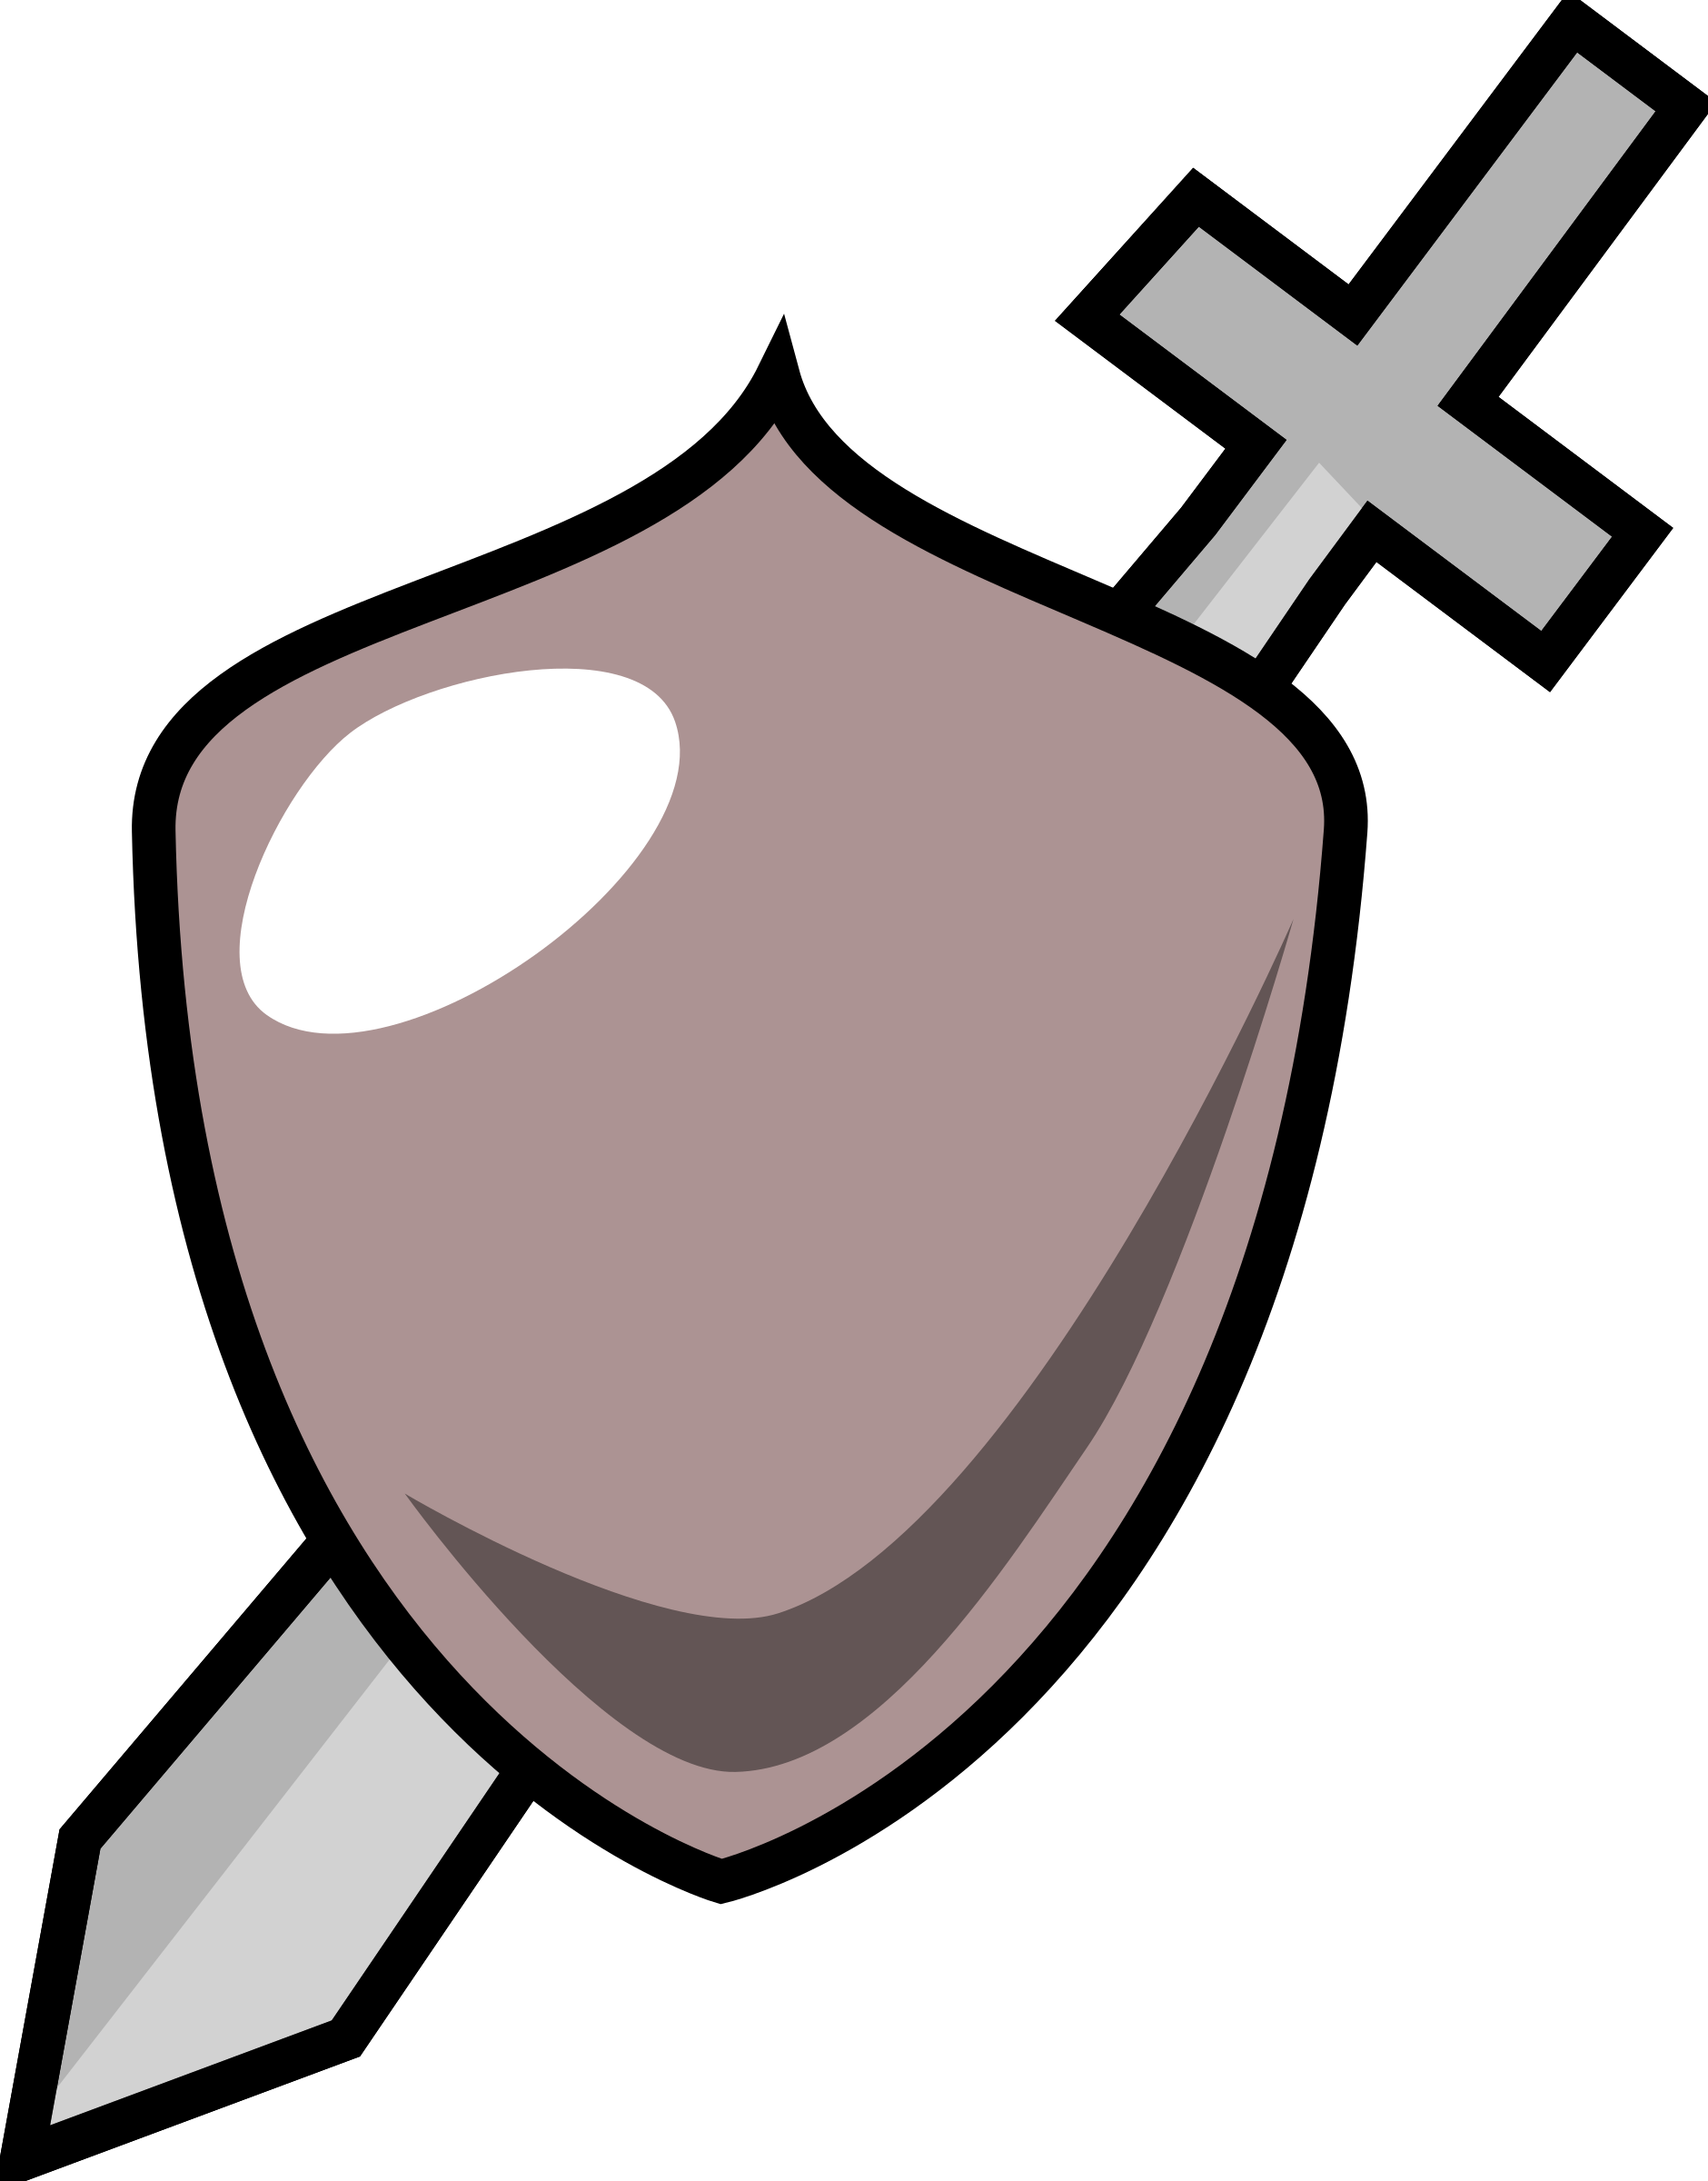 Clipart shield shield outline. Sword and icon big